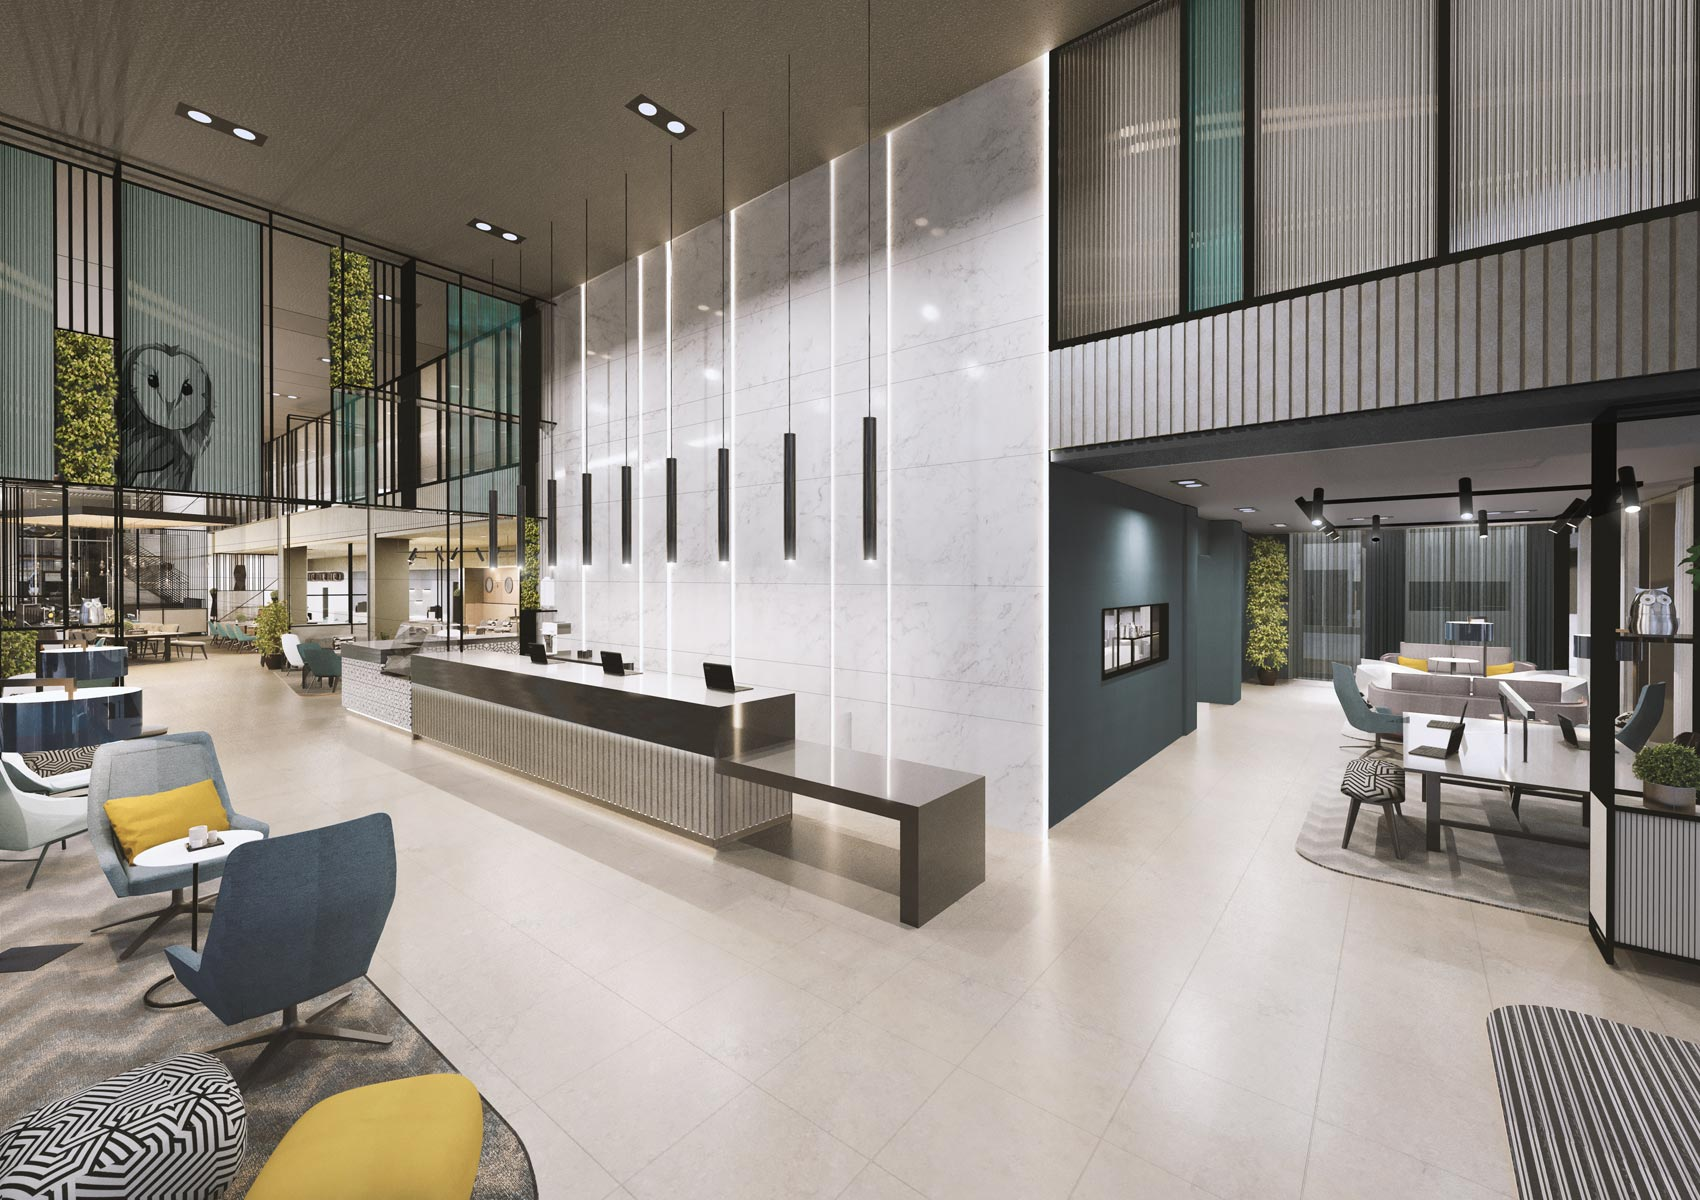 2 Sovereign Square, Leeds, 3D visual of the receotion